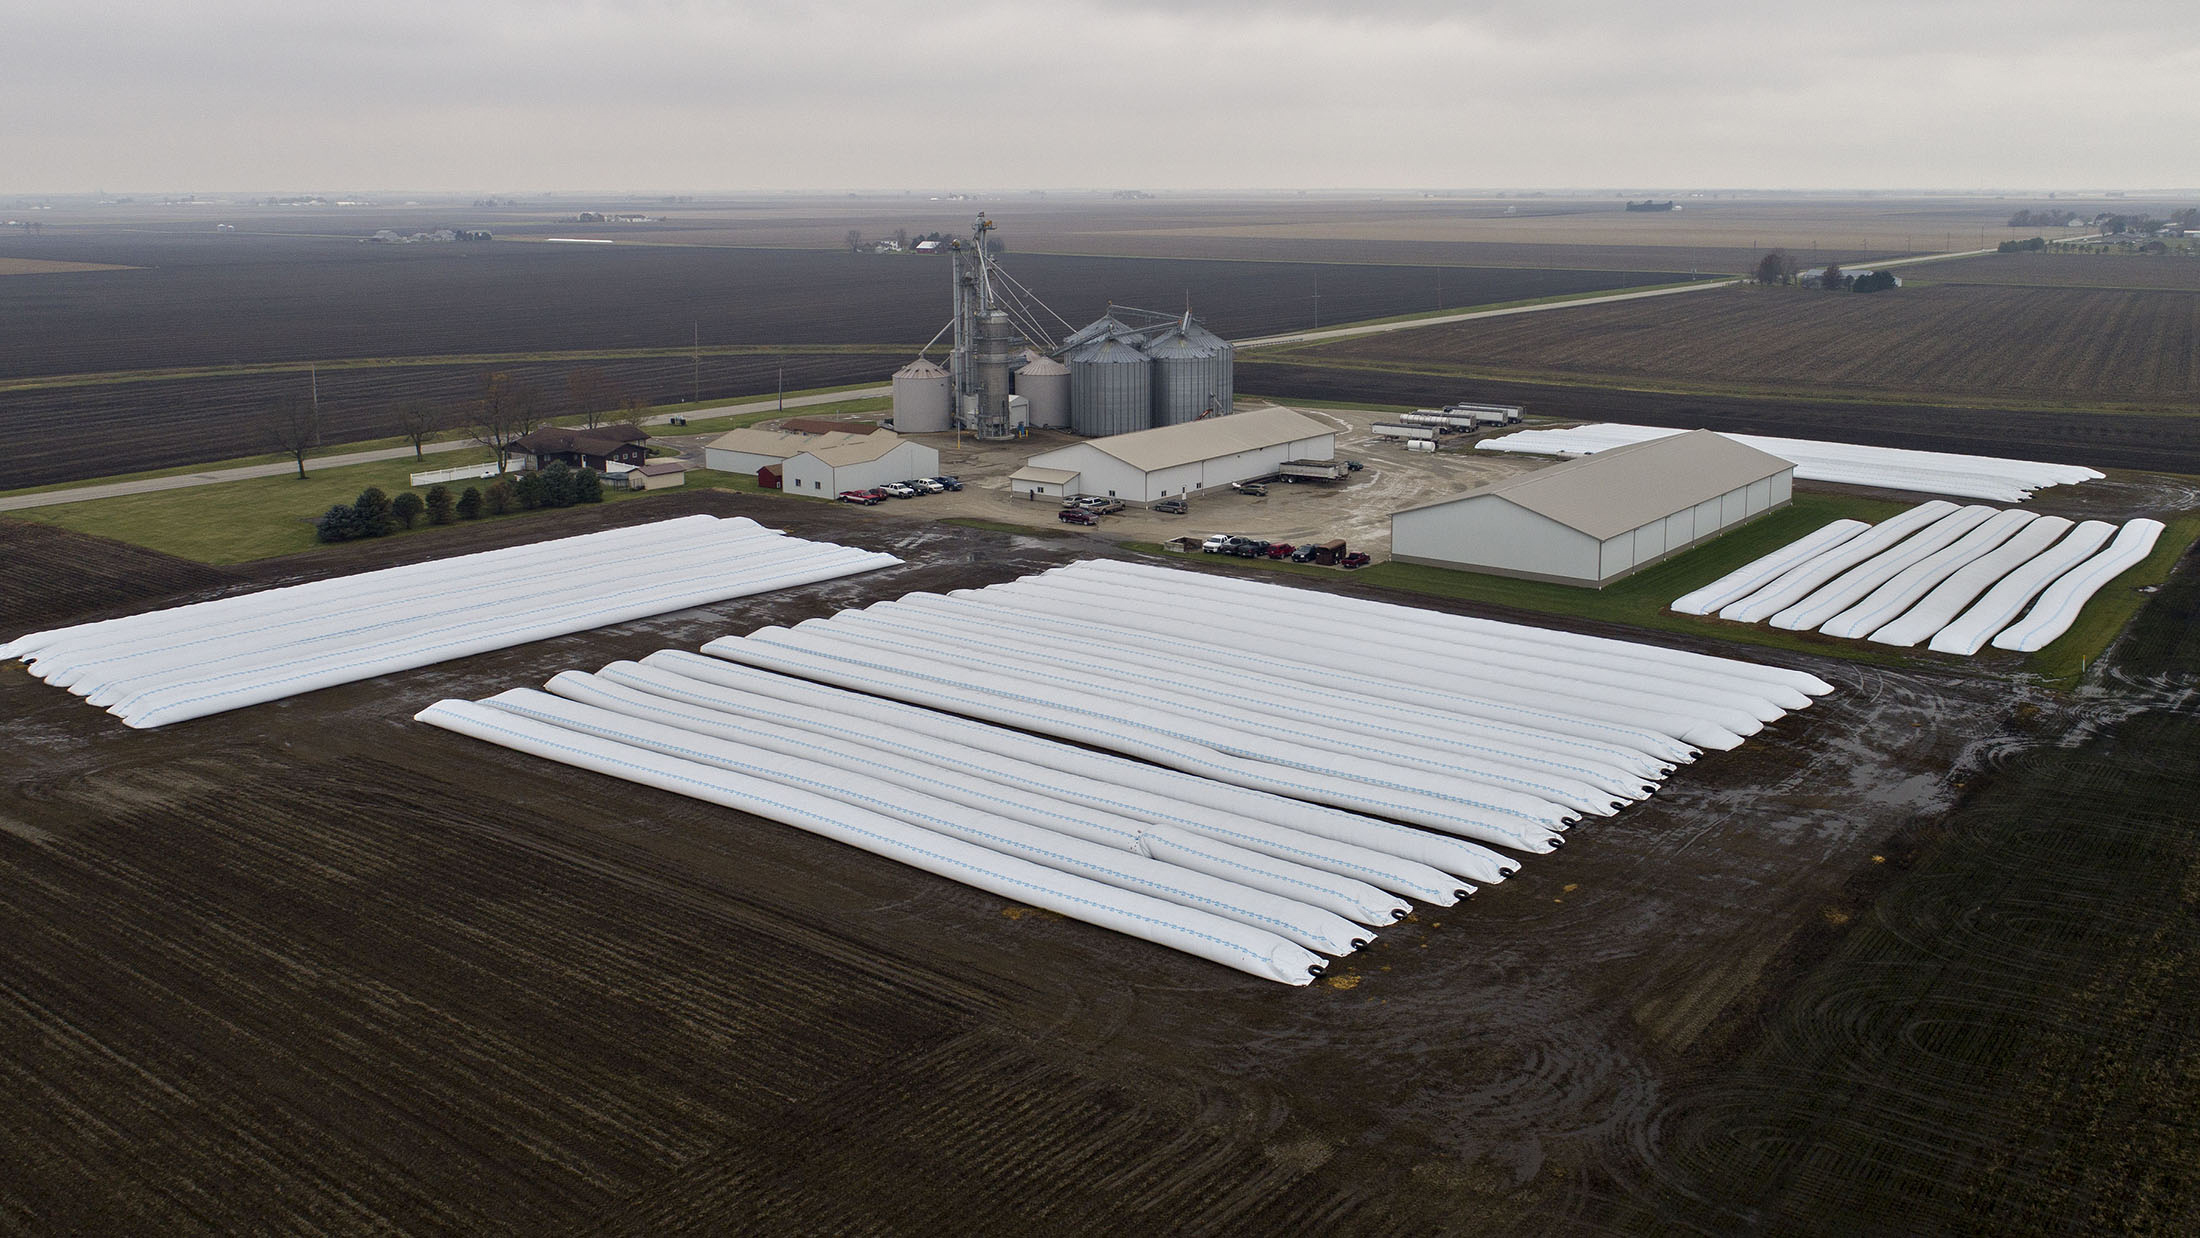 Bags of corn and soybeans sit in rows at Gingerich Farms in this aerial photograph taken over Lovington, Ill., on Nov. 9, 2018. MUST CREDIT: Bloomberg photo by Daniel Acker.